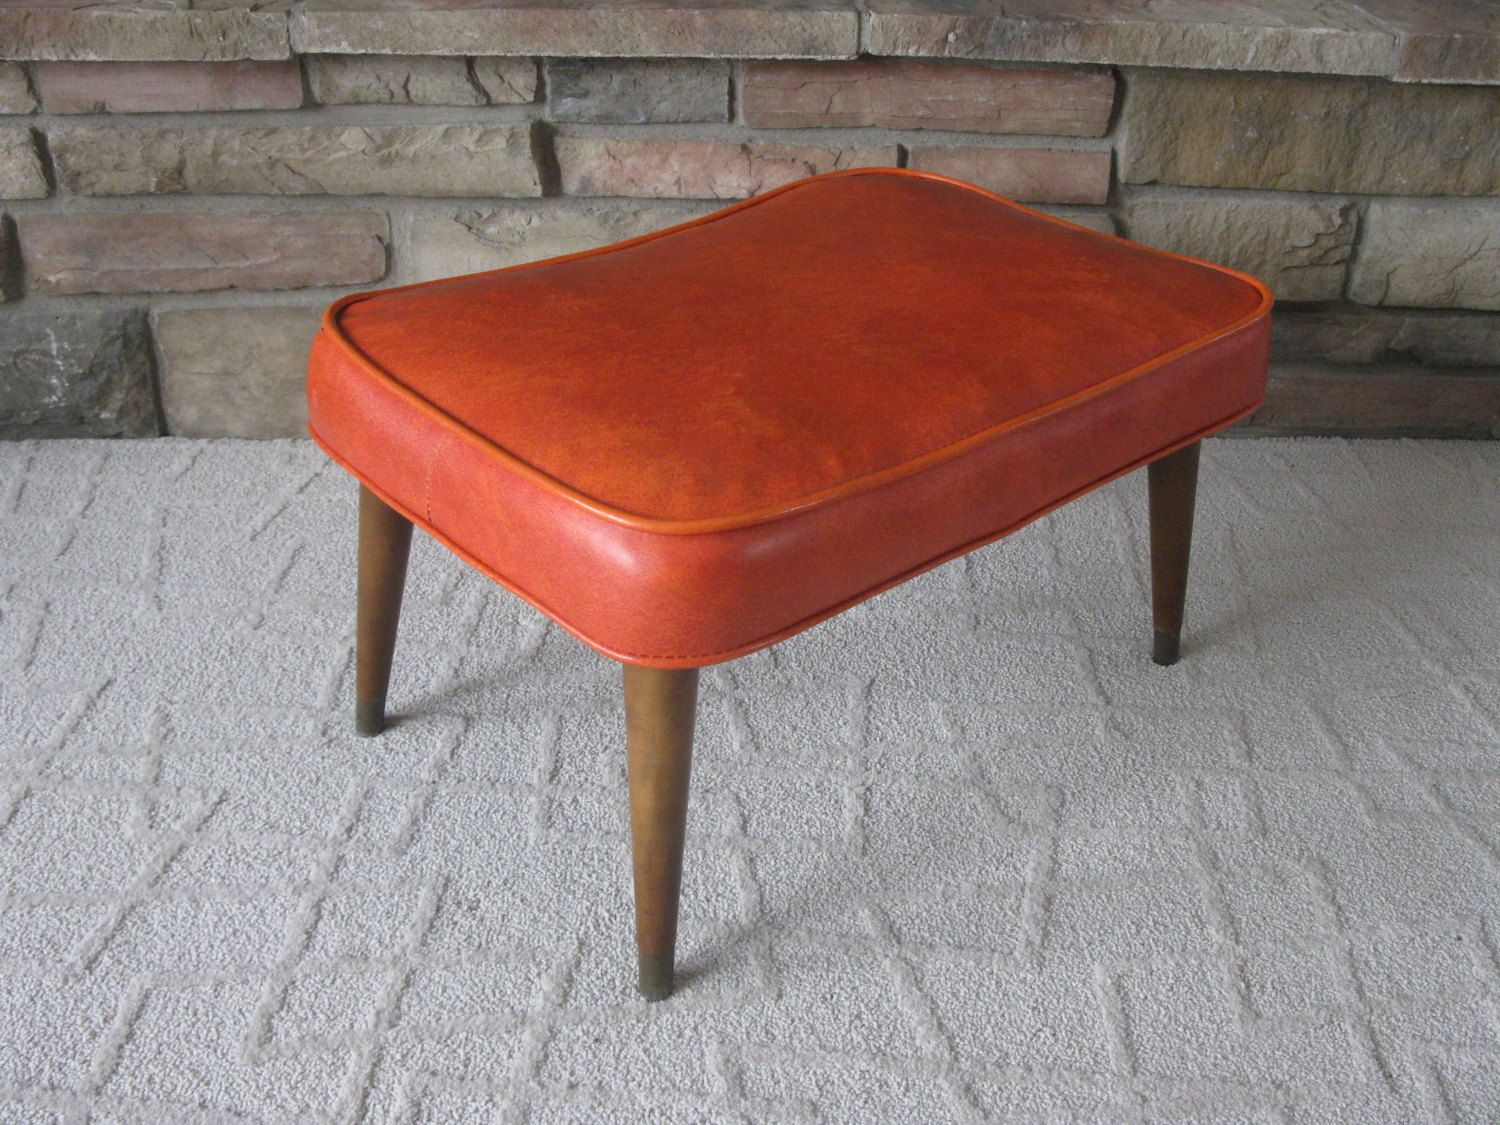 Footstool Mid Century Orange Vinyl Orange Faux Leather Vintage Hassock Ottoman Wood Legs Brass Feet Padded Stool Mad Padded Stool Wood Legs Footstool